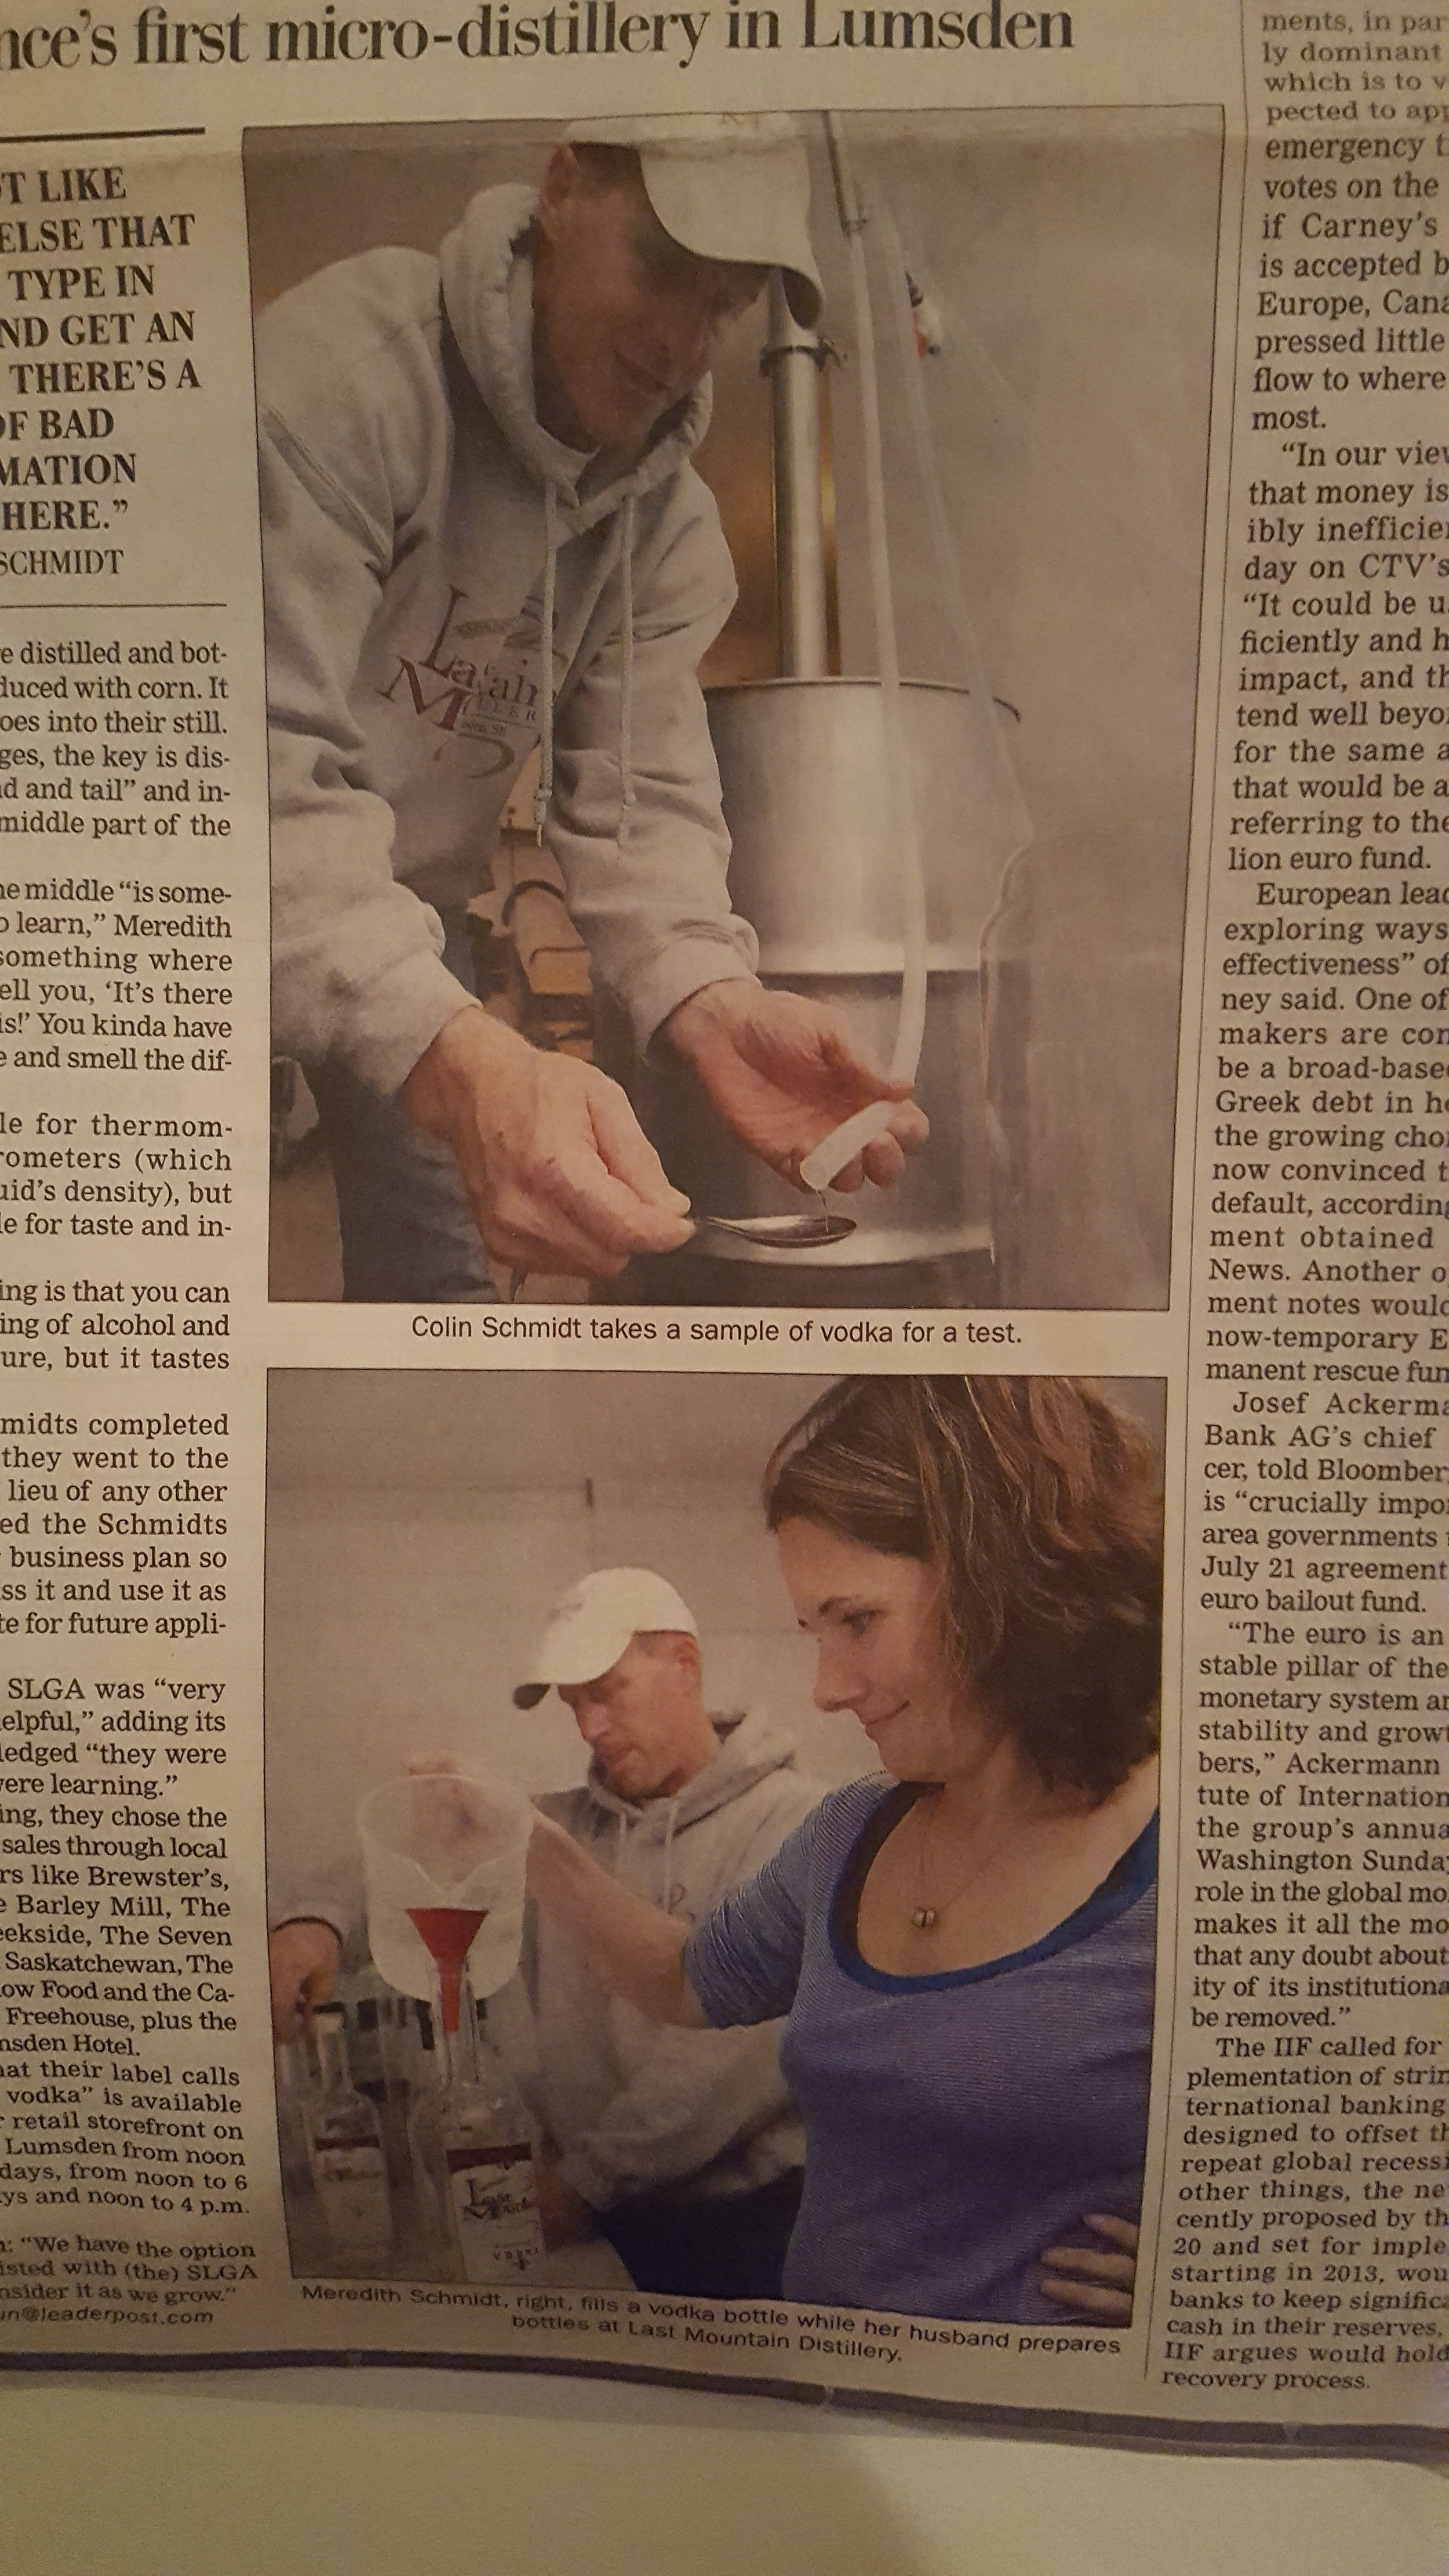 Last Mountain Distillery opens out of Colin and Meredith's garage.